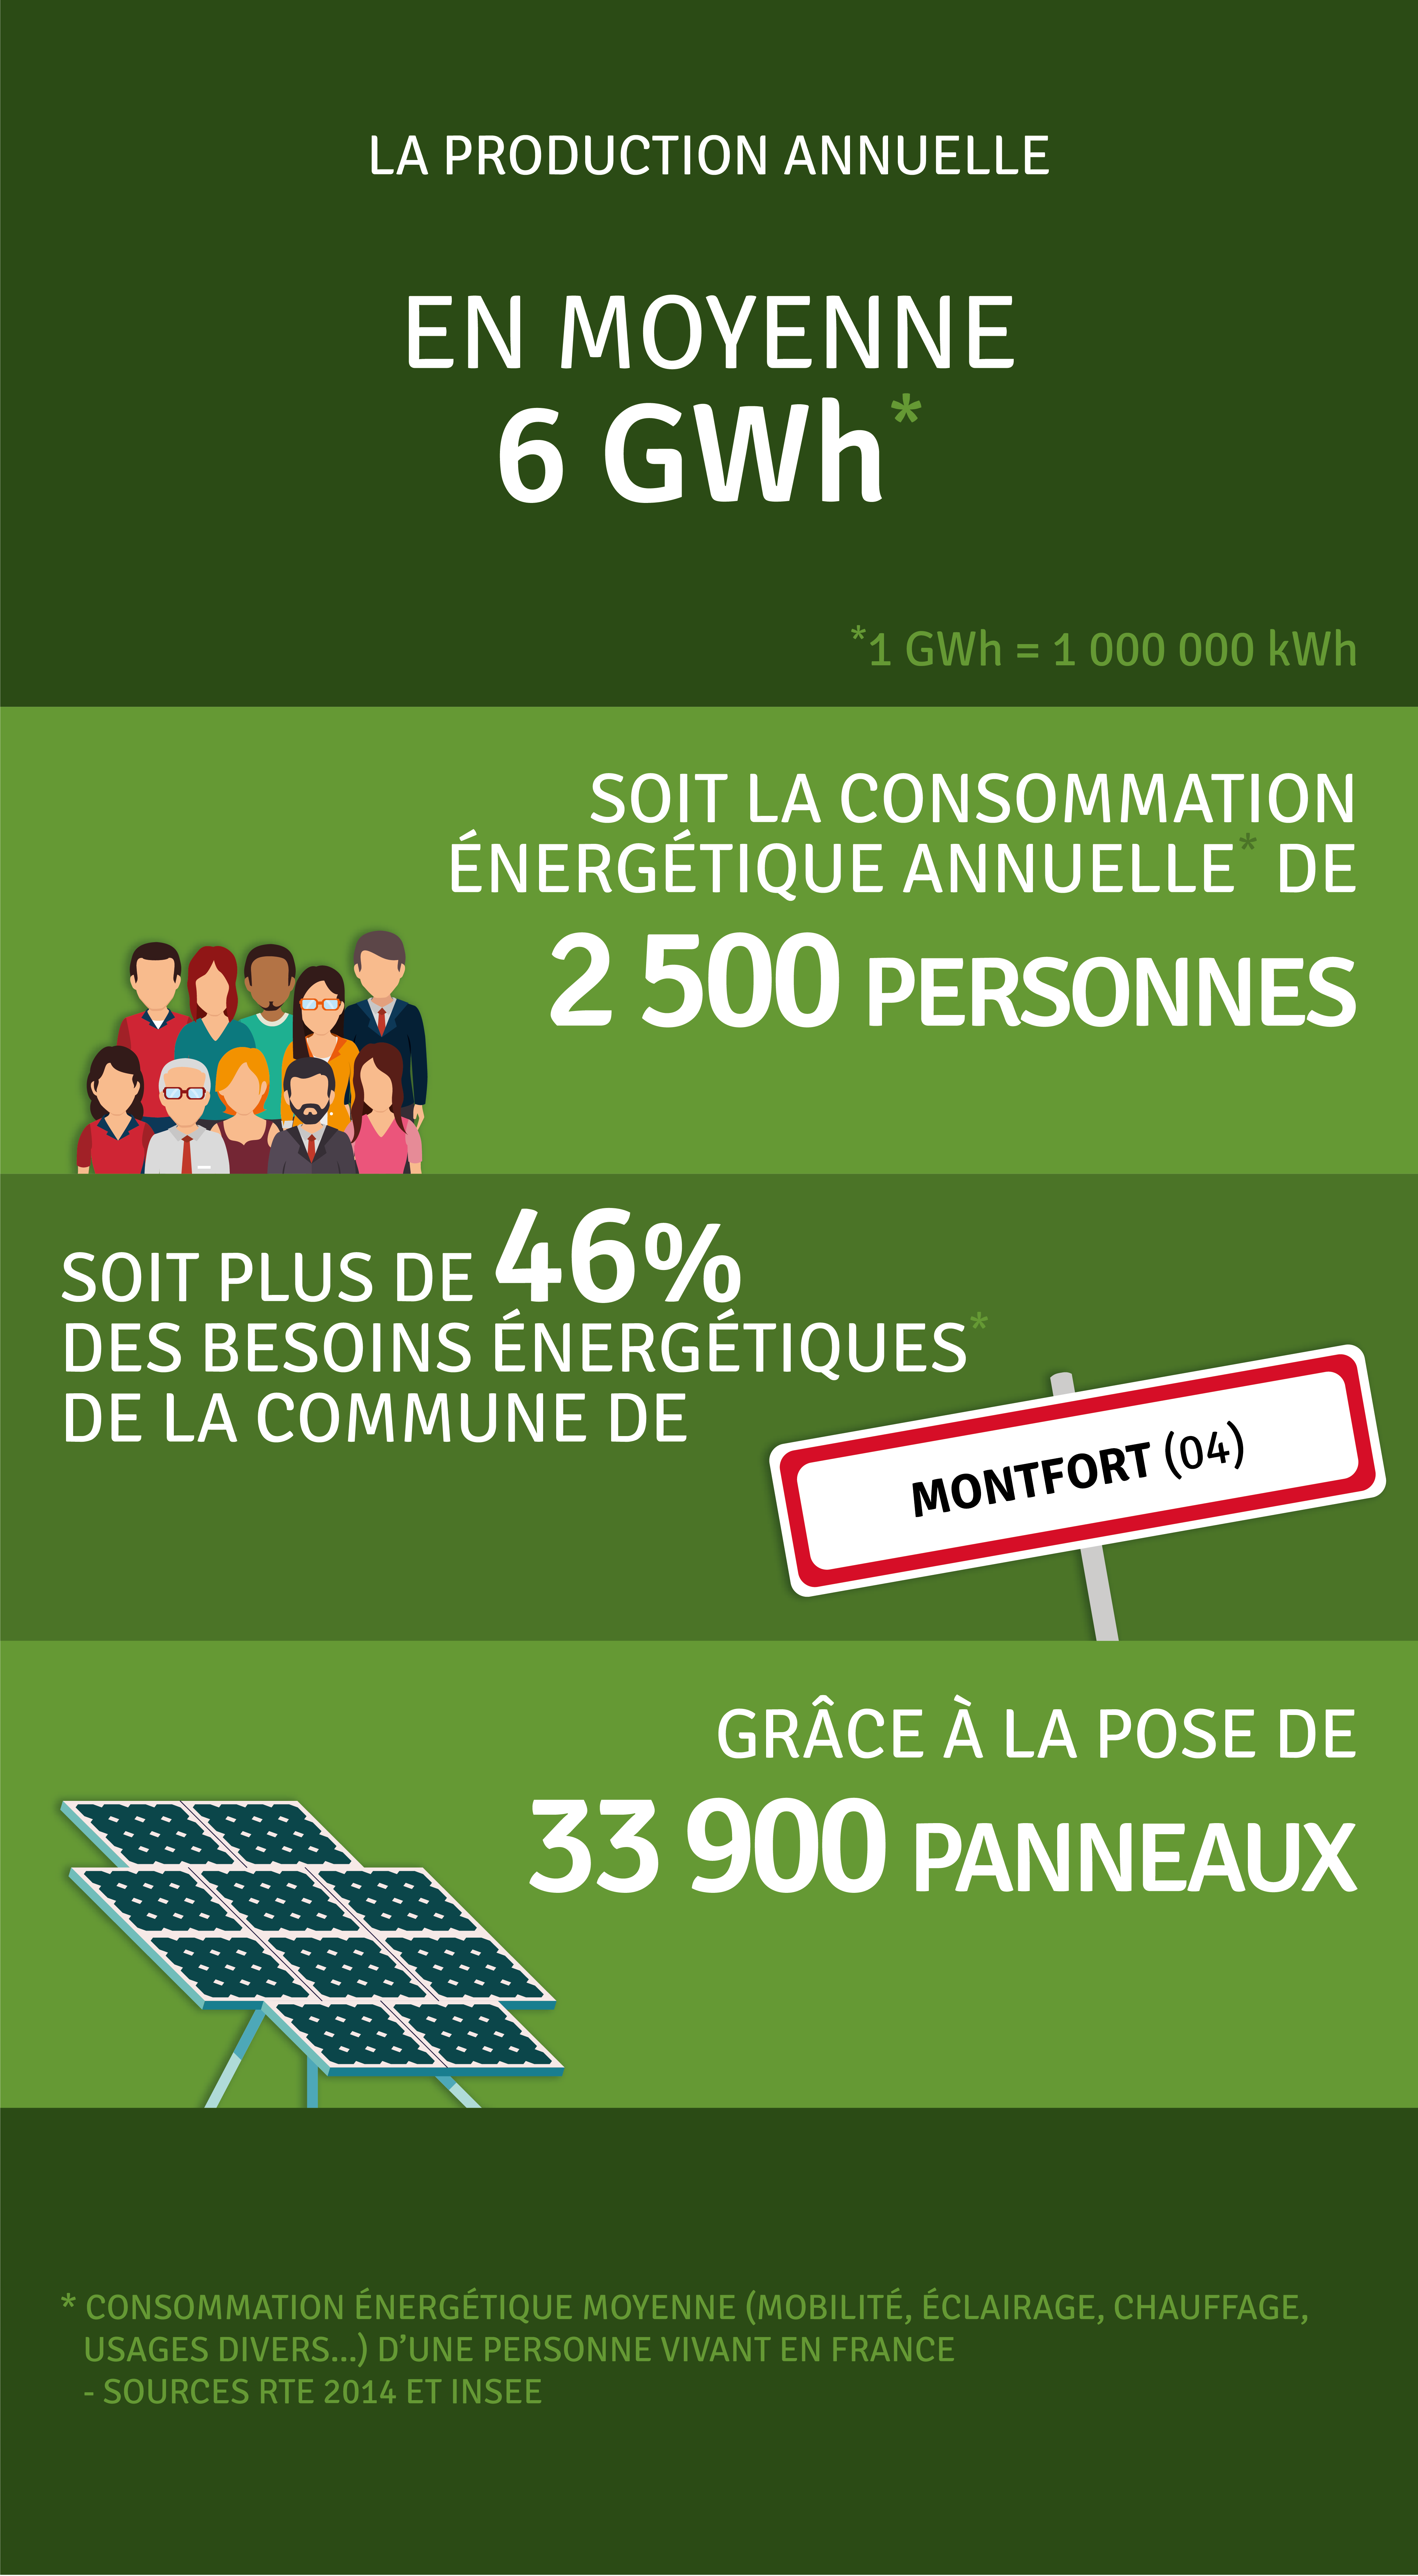 Production annuelle 6 400 000 kWh